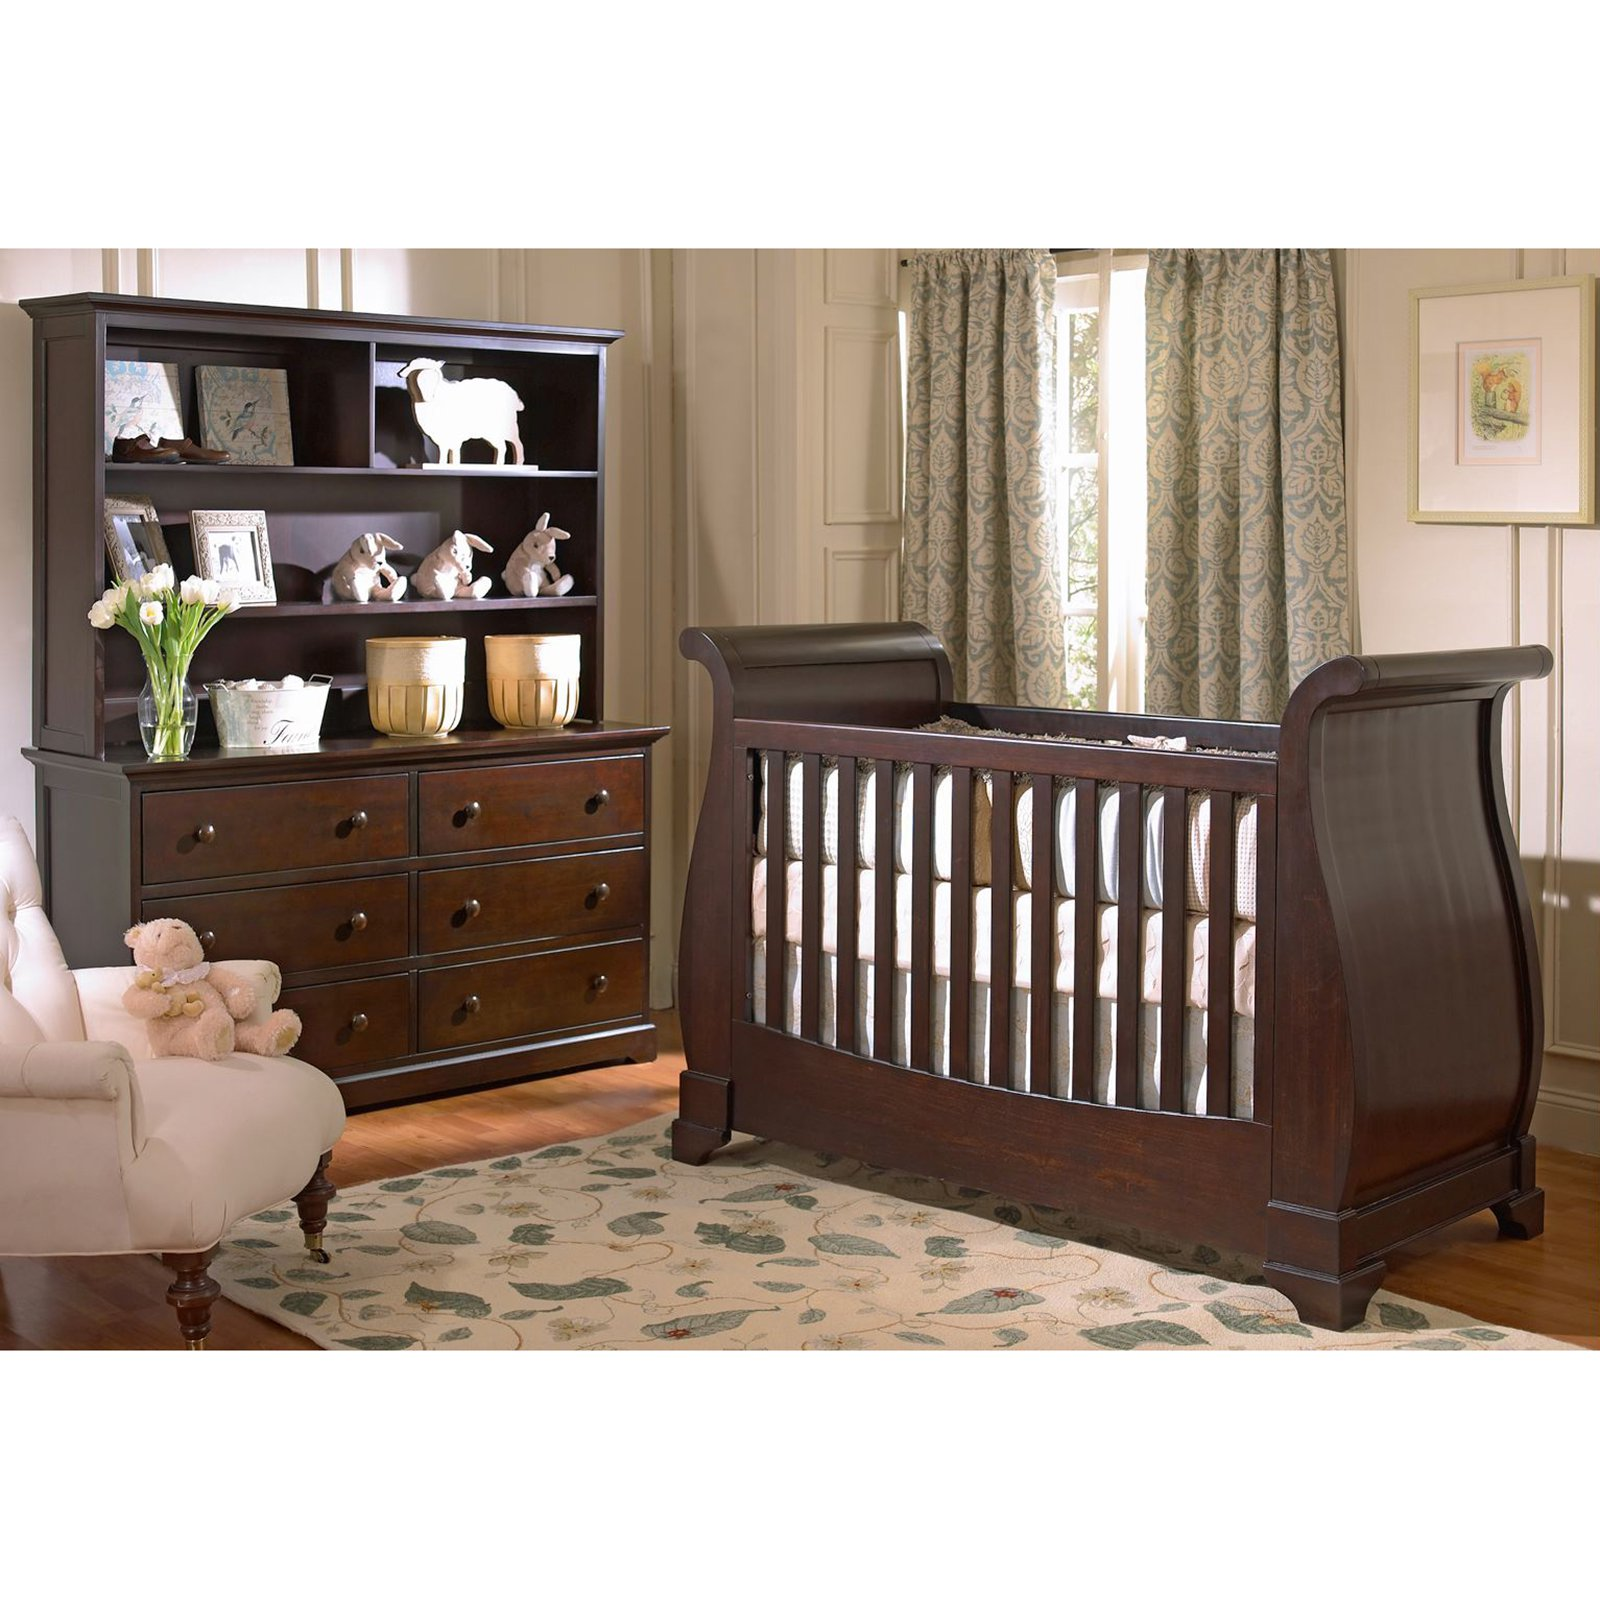 decorative wooden crib in dark brown by munire crib on wooden floor plus floral carpet and wooden vanity for nursery decor ideas